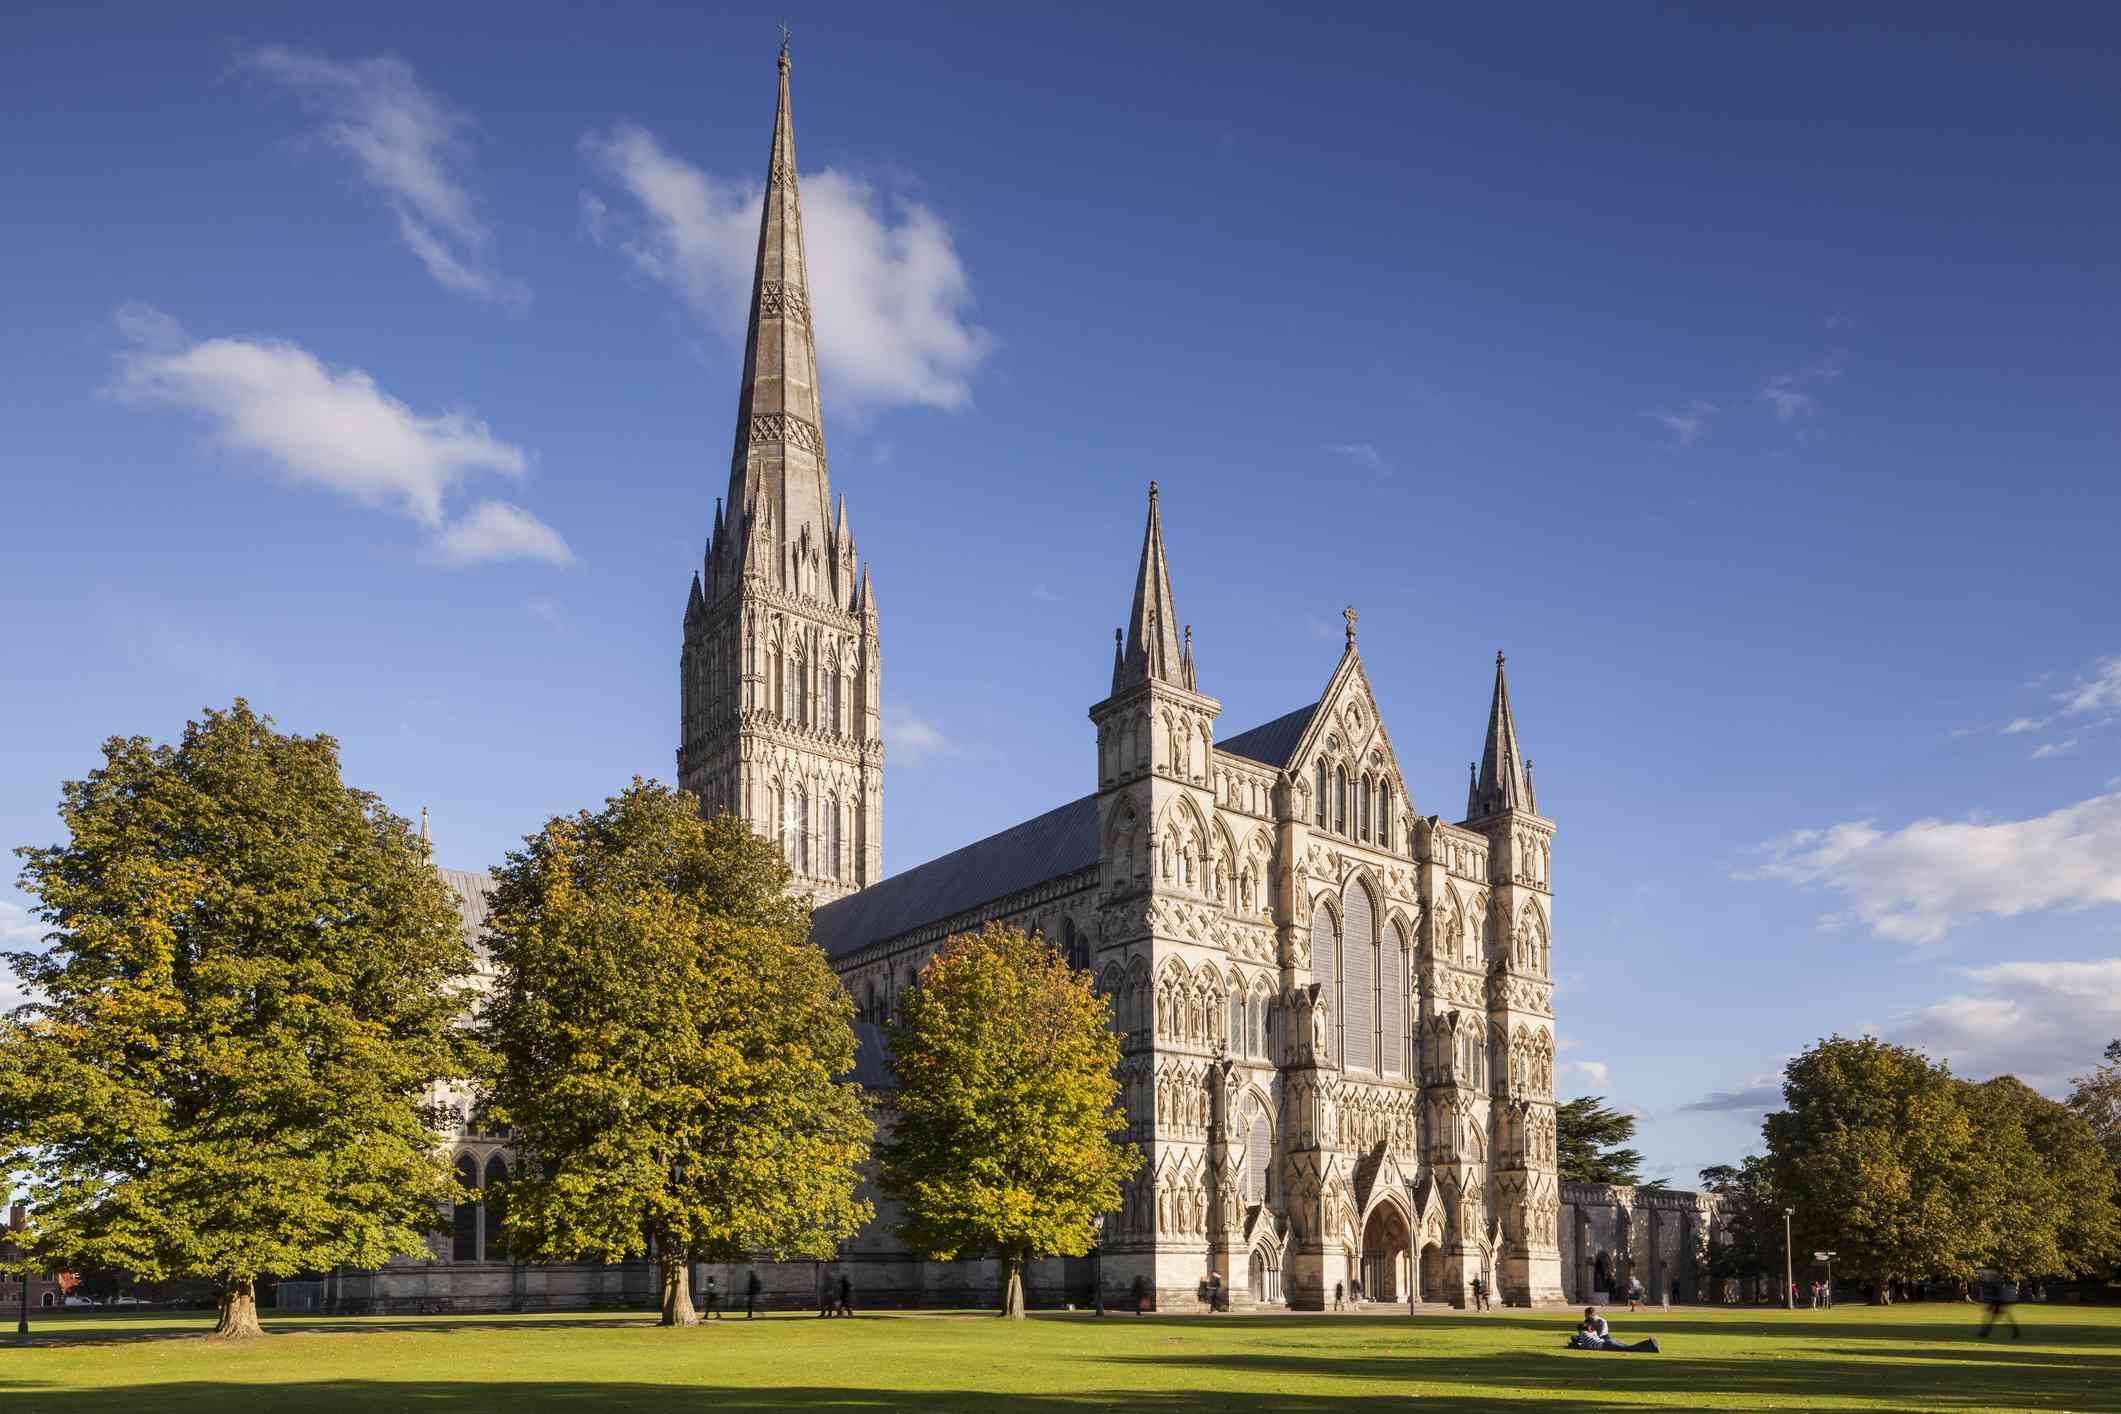 West front of Salisbury cathedral in Salisbury